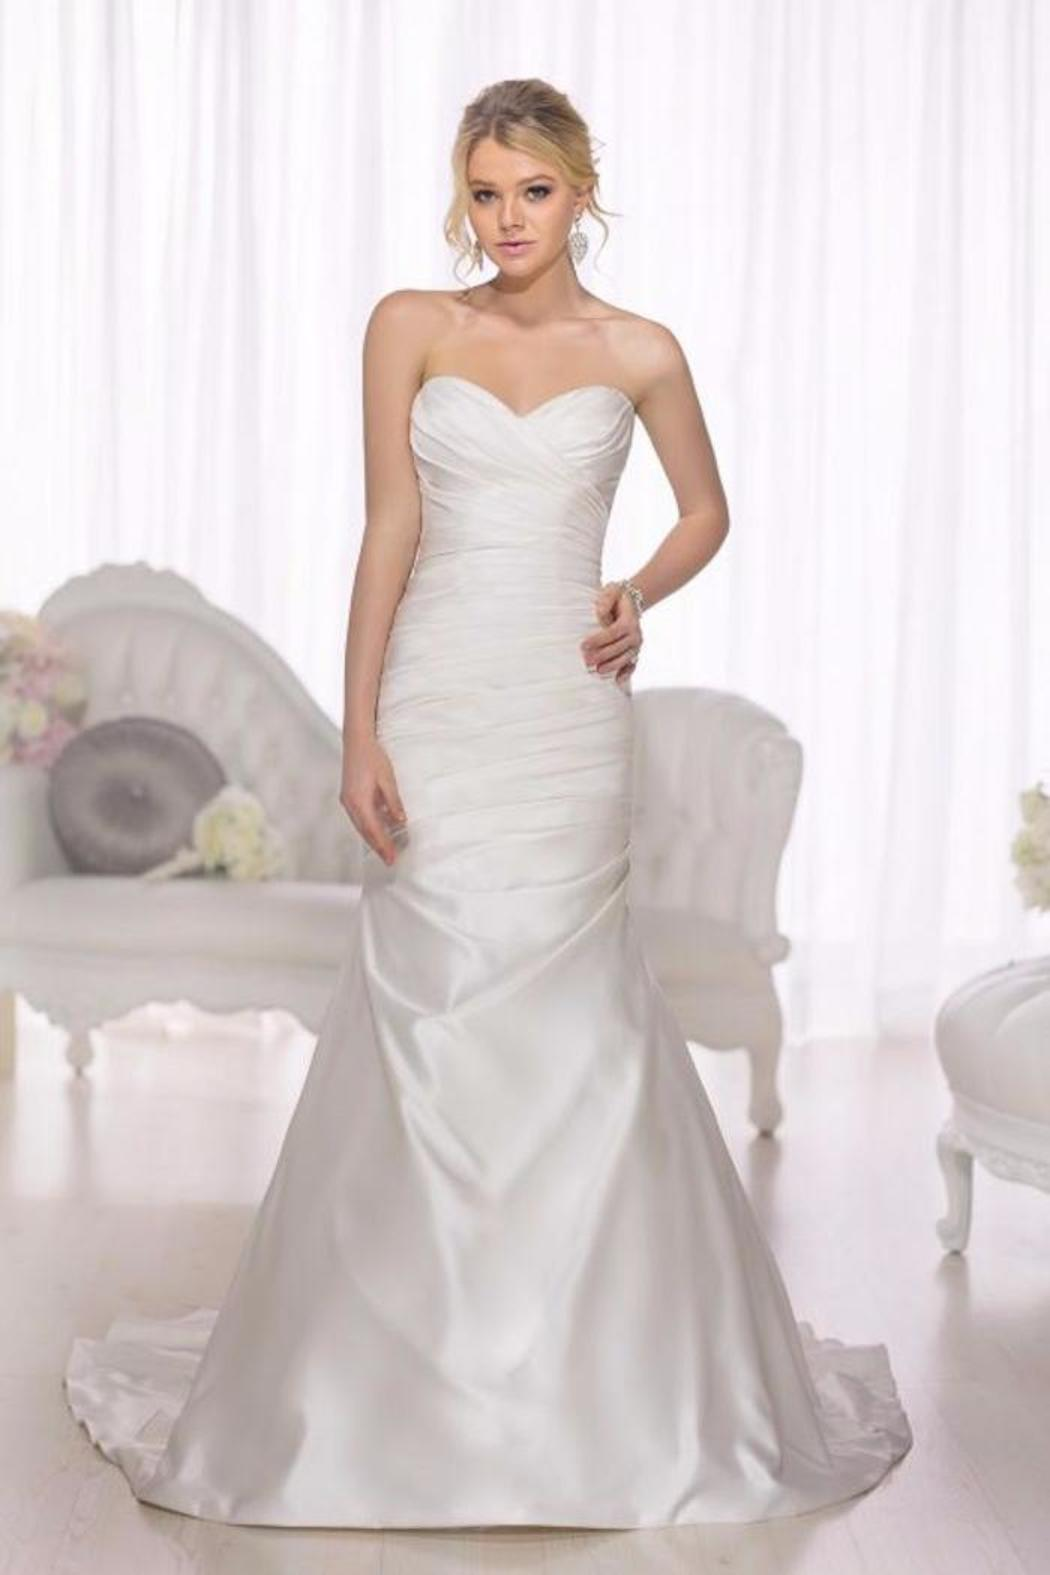 Essense of australia satin fit n flare gown from texas by for Satin fit and flare wedding dress